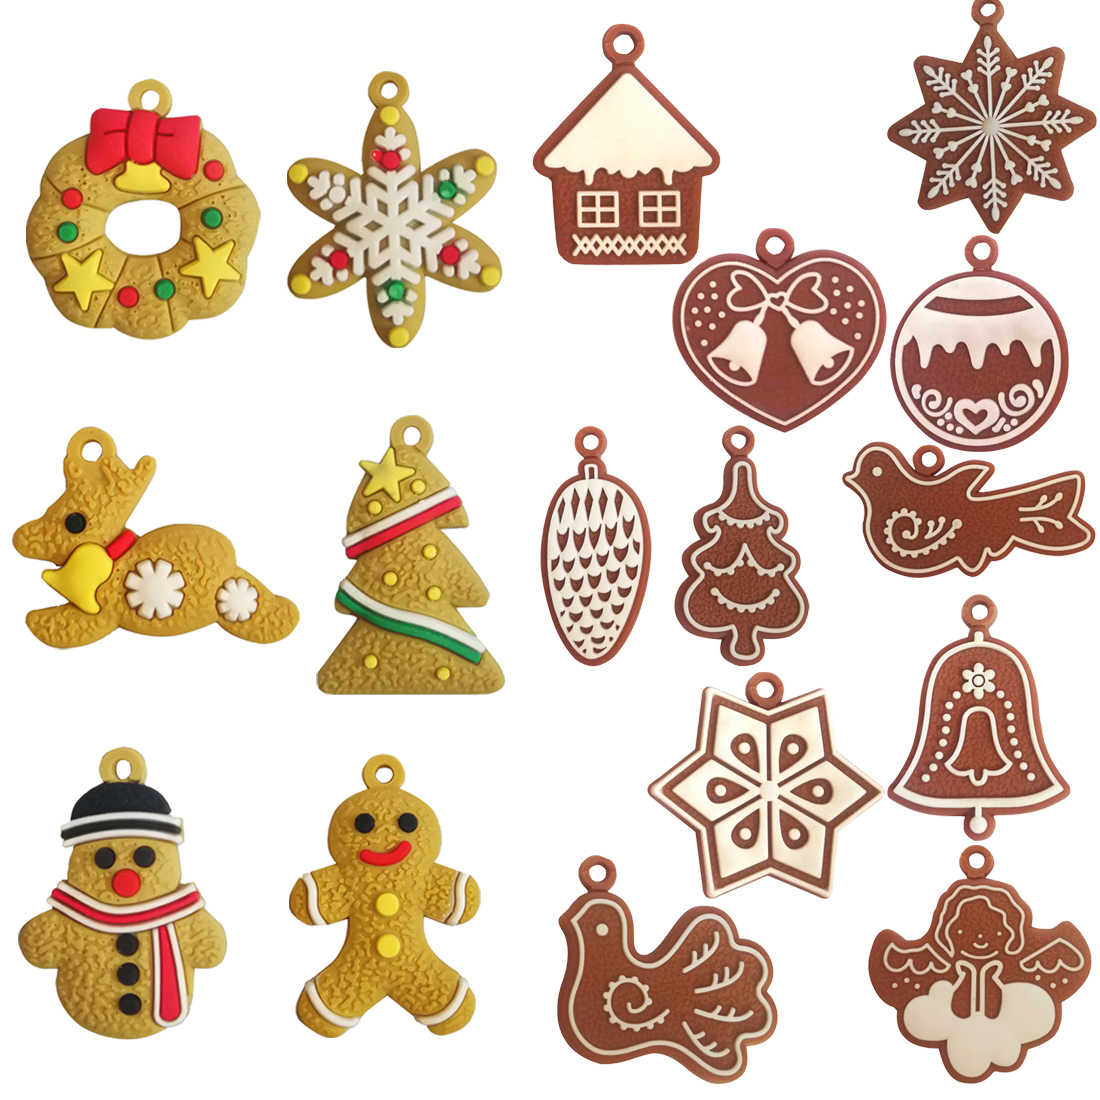 Snowflake Snowman Santa Claus Gingerbread Man Christmas Tree Hanging Ornaments Party Christmas Decorations for Home